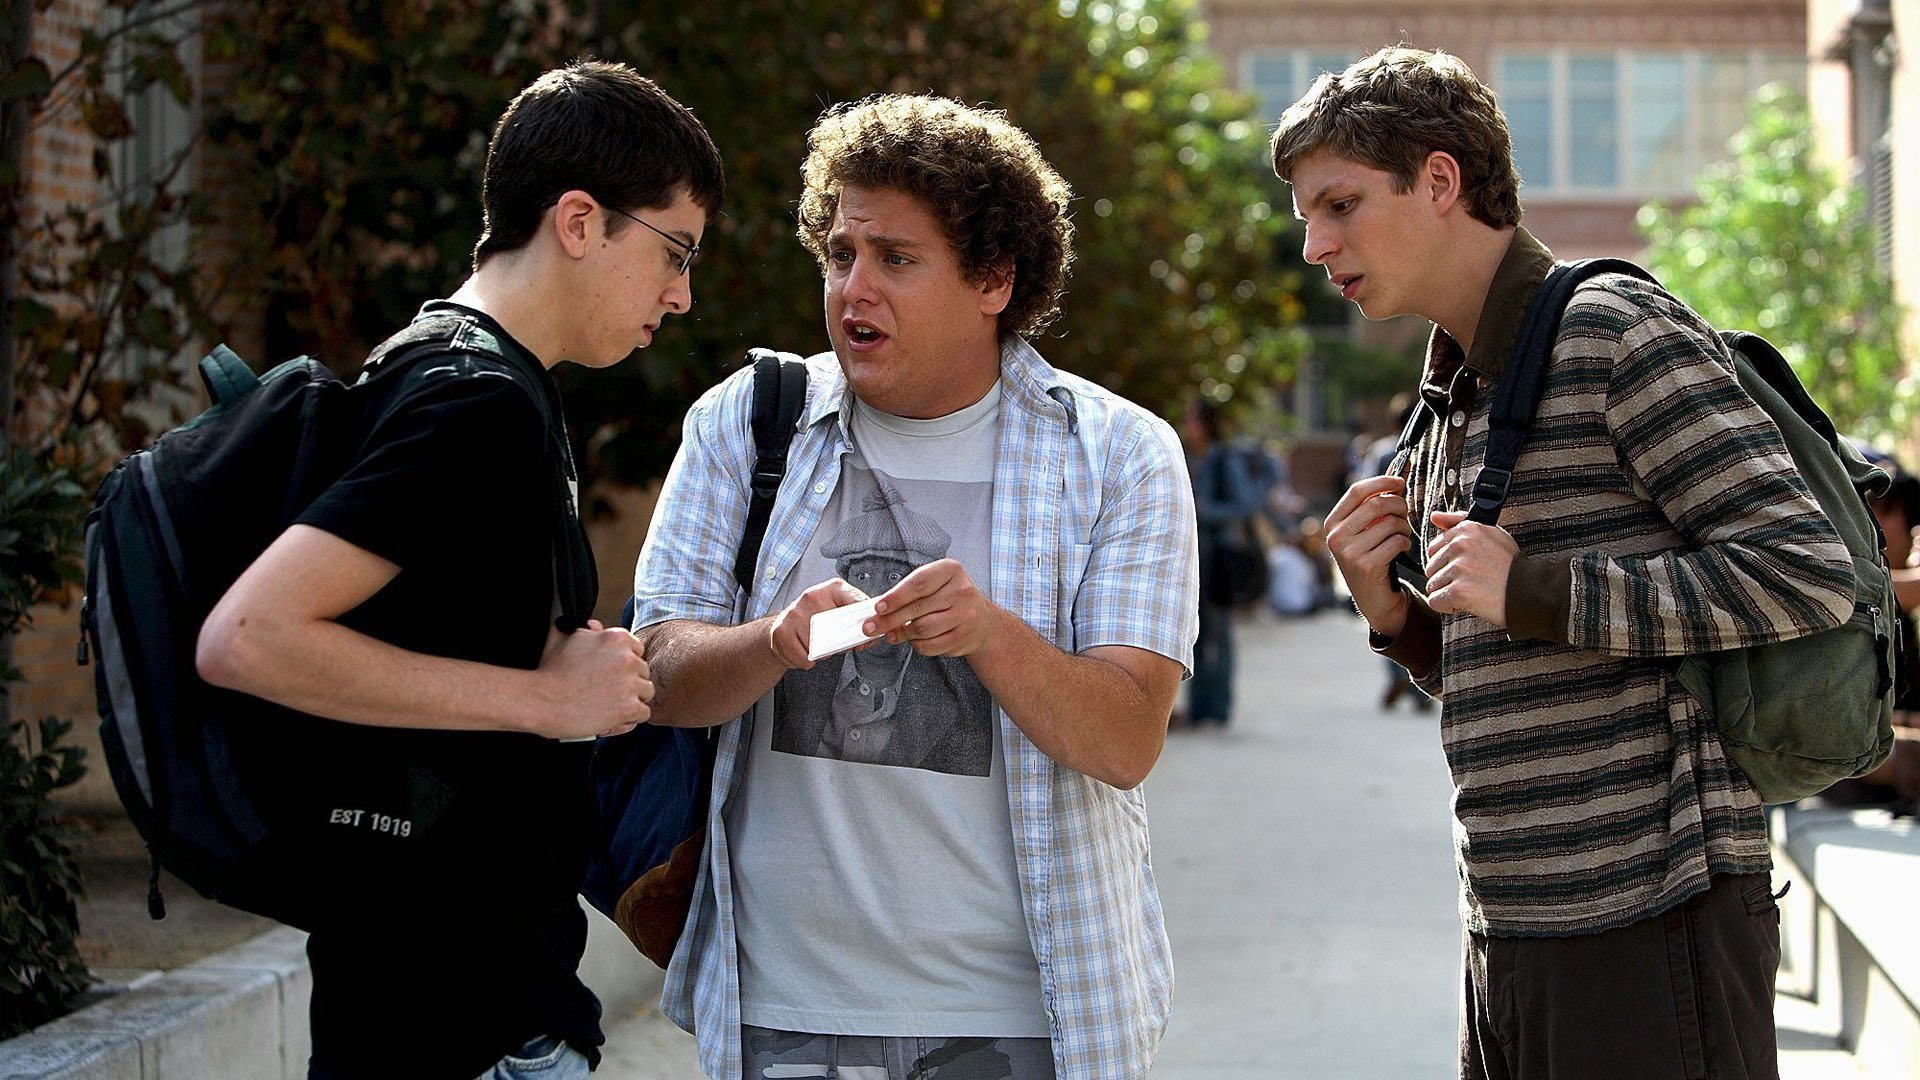 The 25 Best Comedy Movies of the 21st Century: Funniest